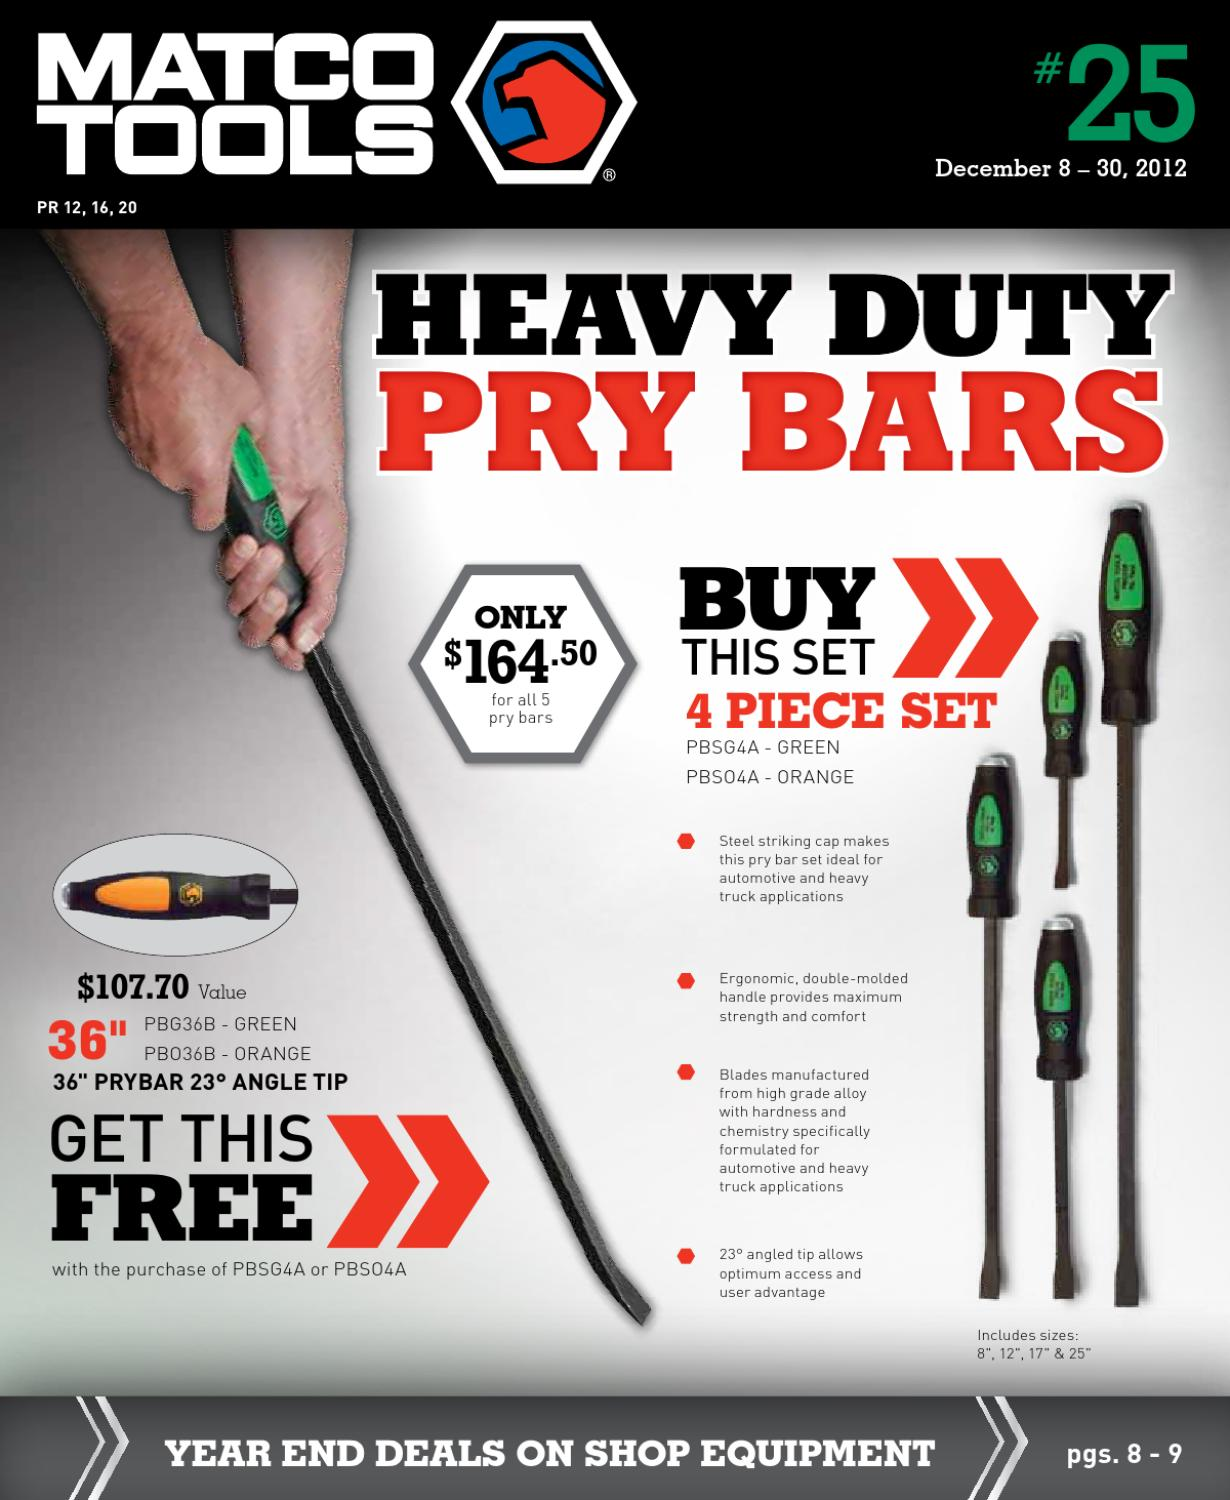 Matco Tools Sales Promo Flyer #25 by Bill Amereihn - issuu